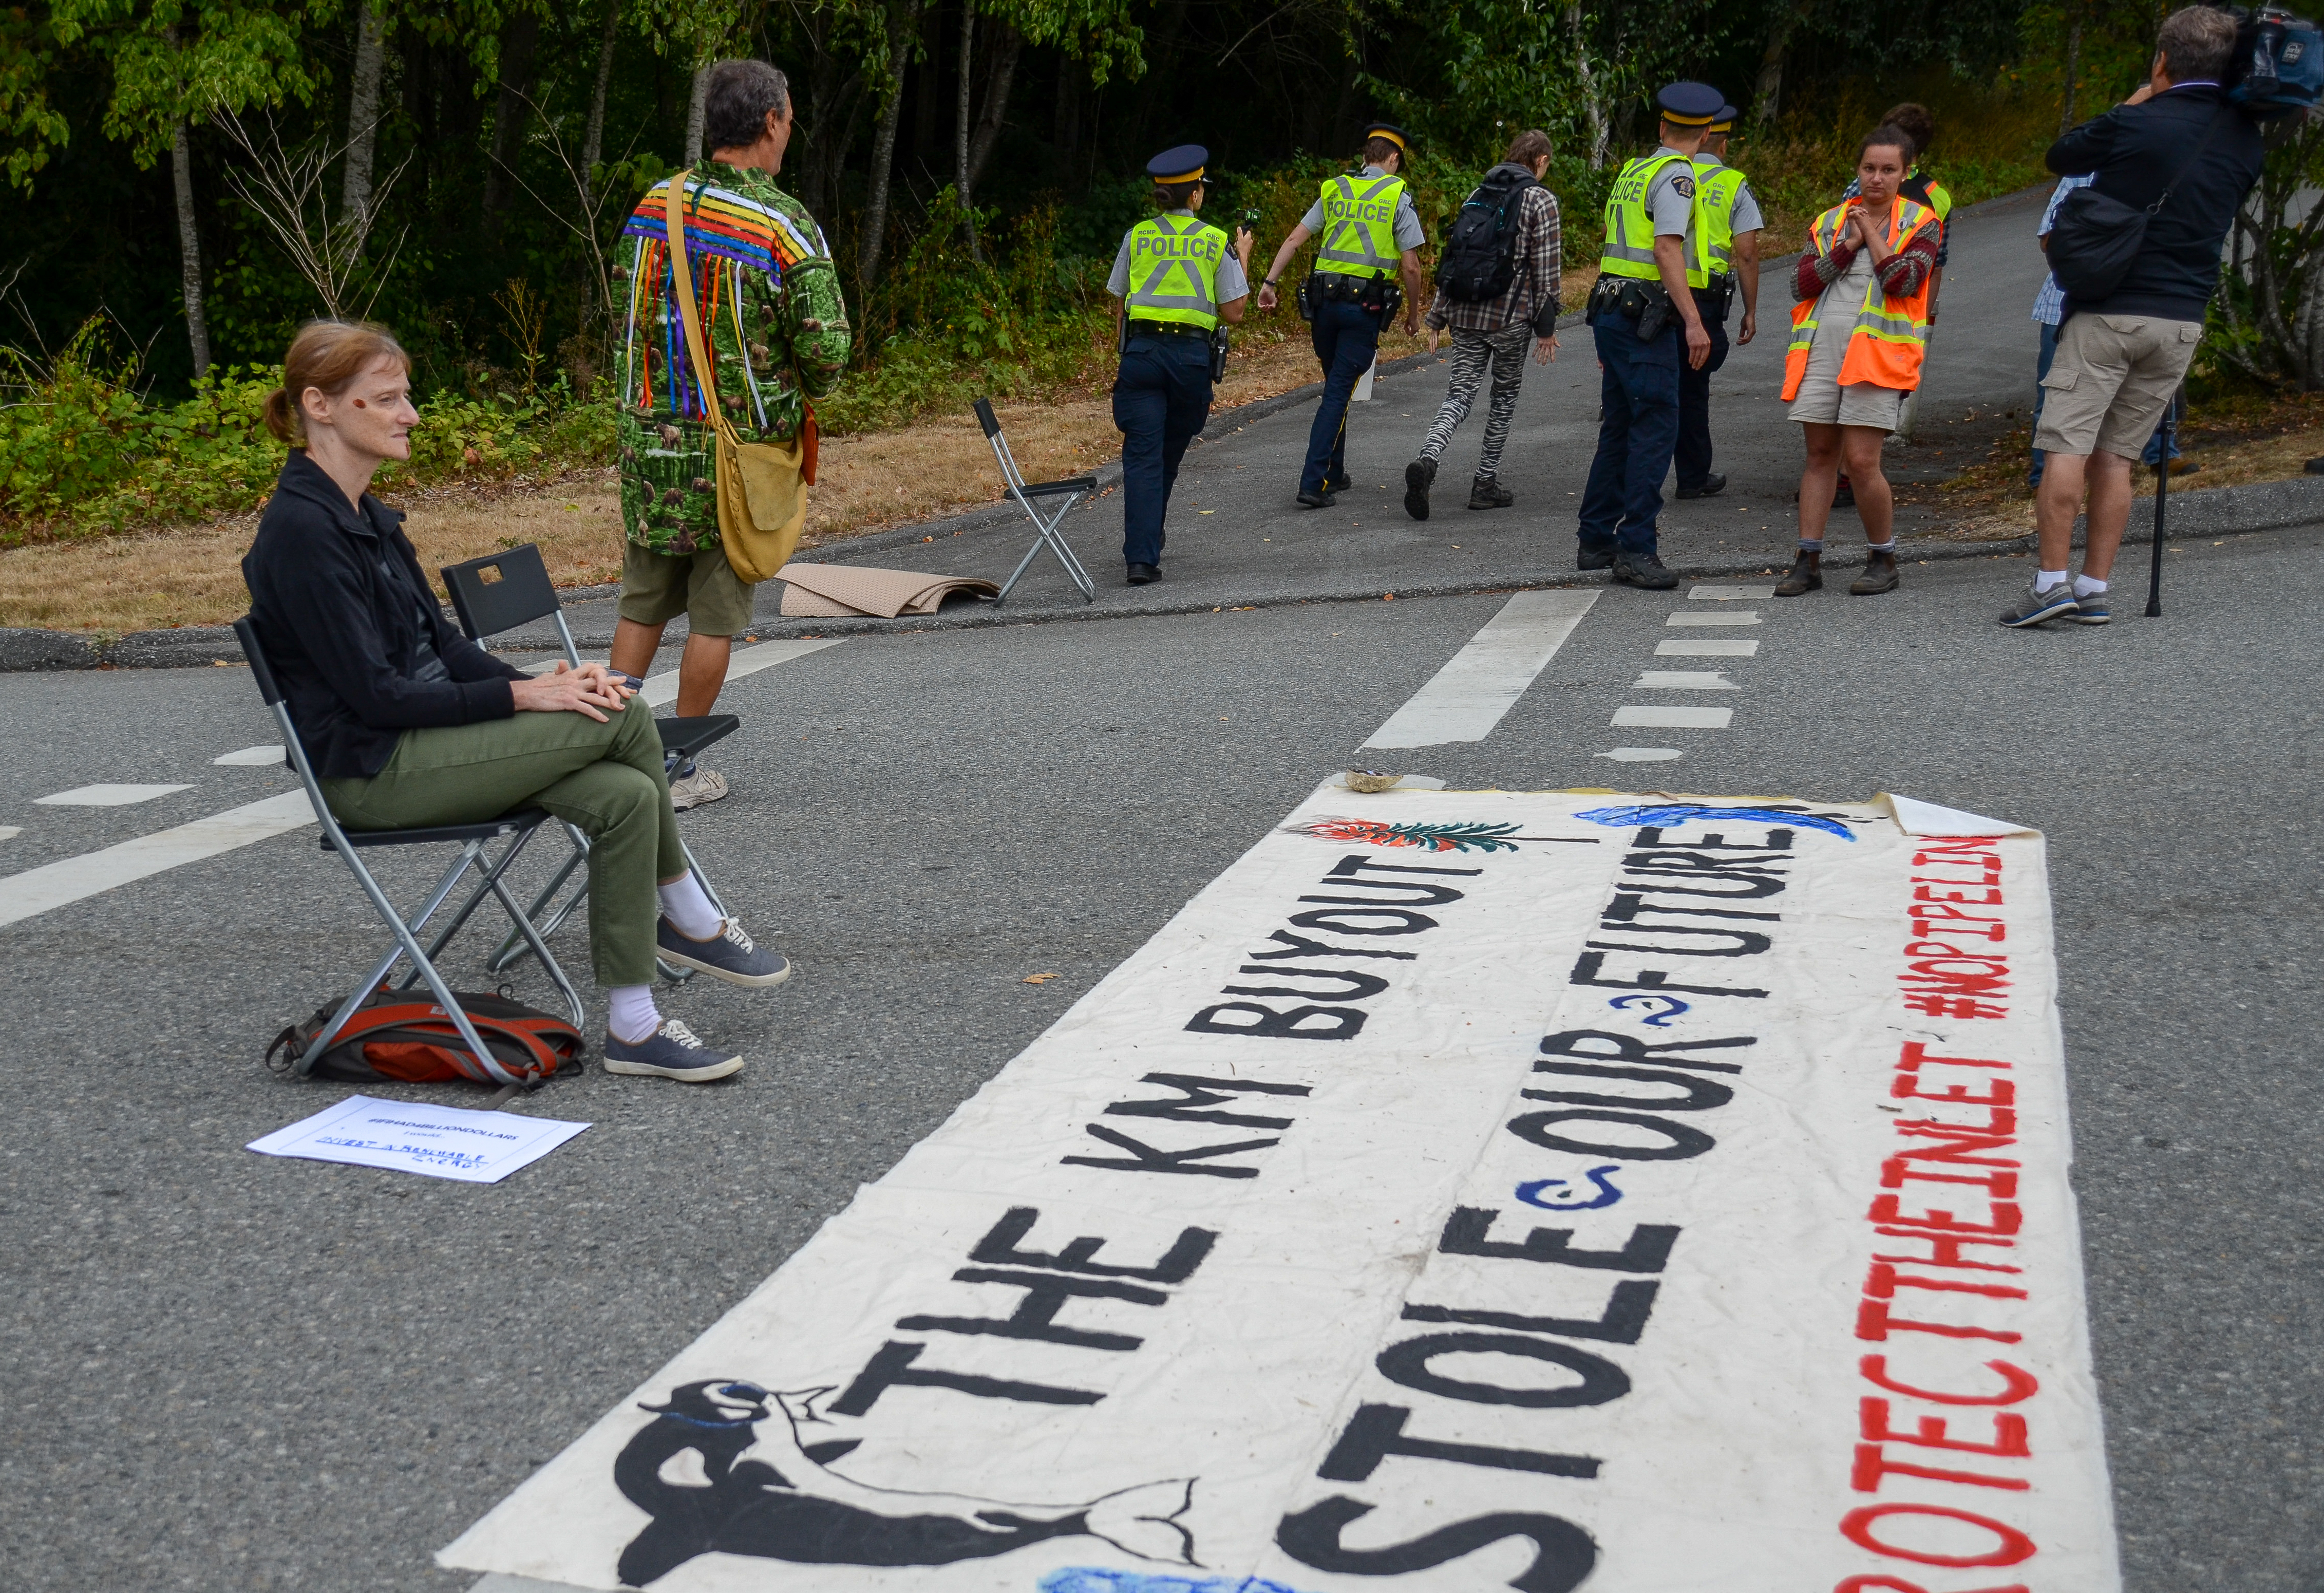 851px version of KM-Protest-Spriggs-8.jpg